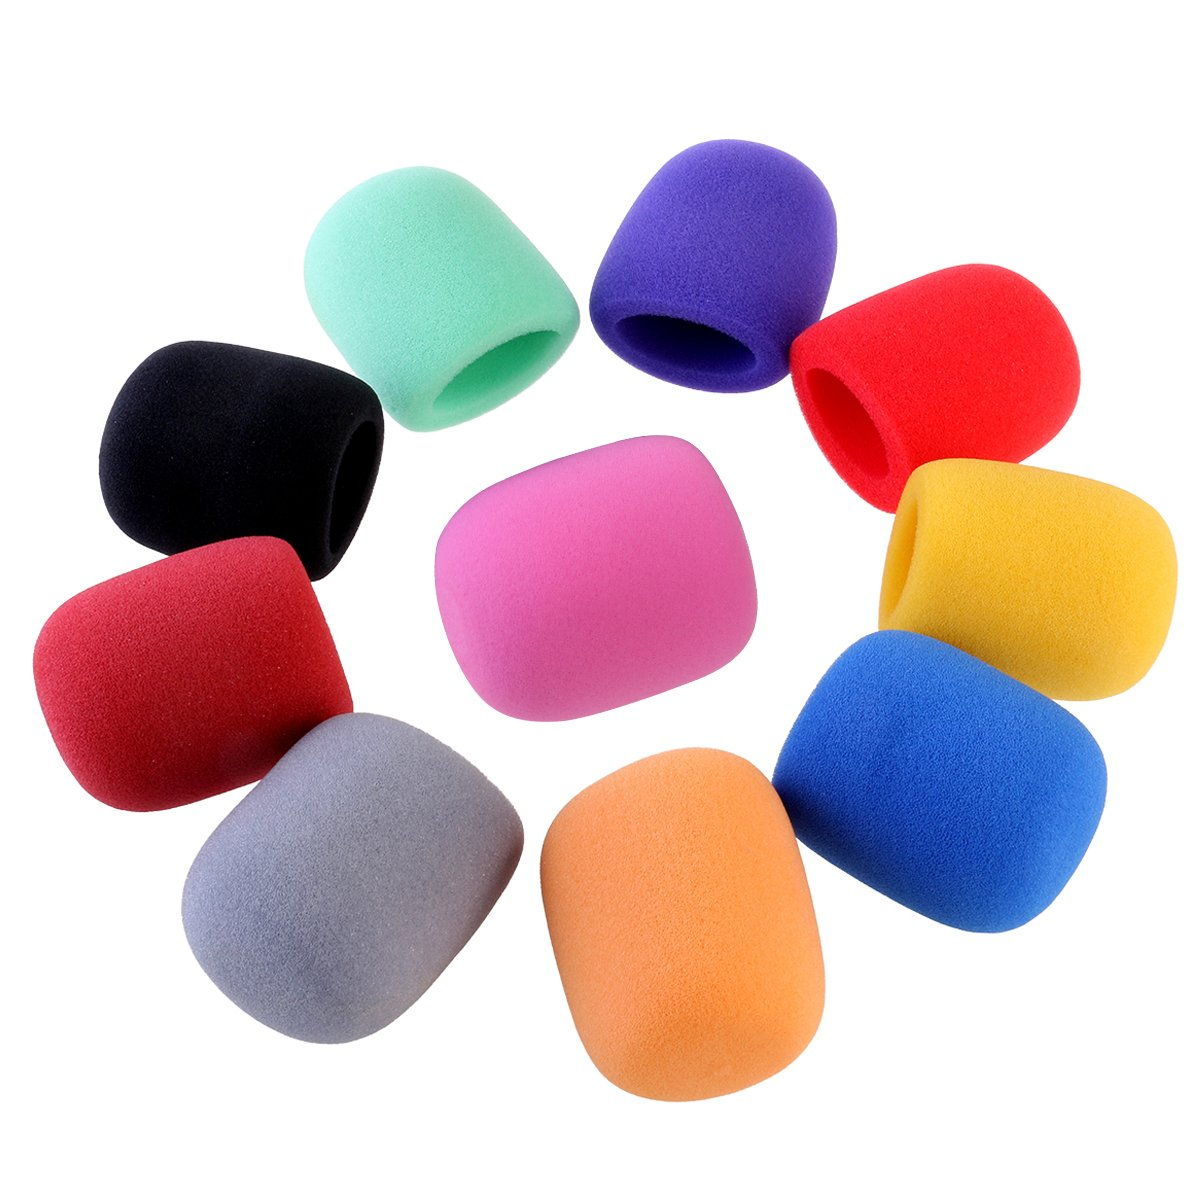 ROSENICE Handheld Stage Microphone Windscreen Foam Cover 10 Colors ZA0949058Y1FO5272